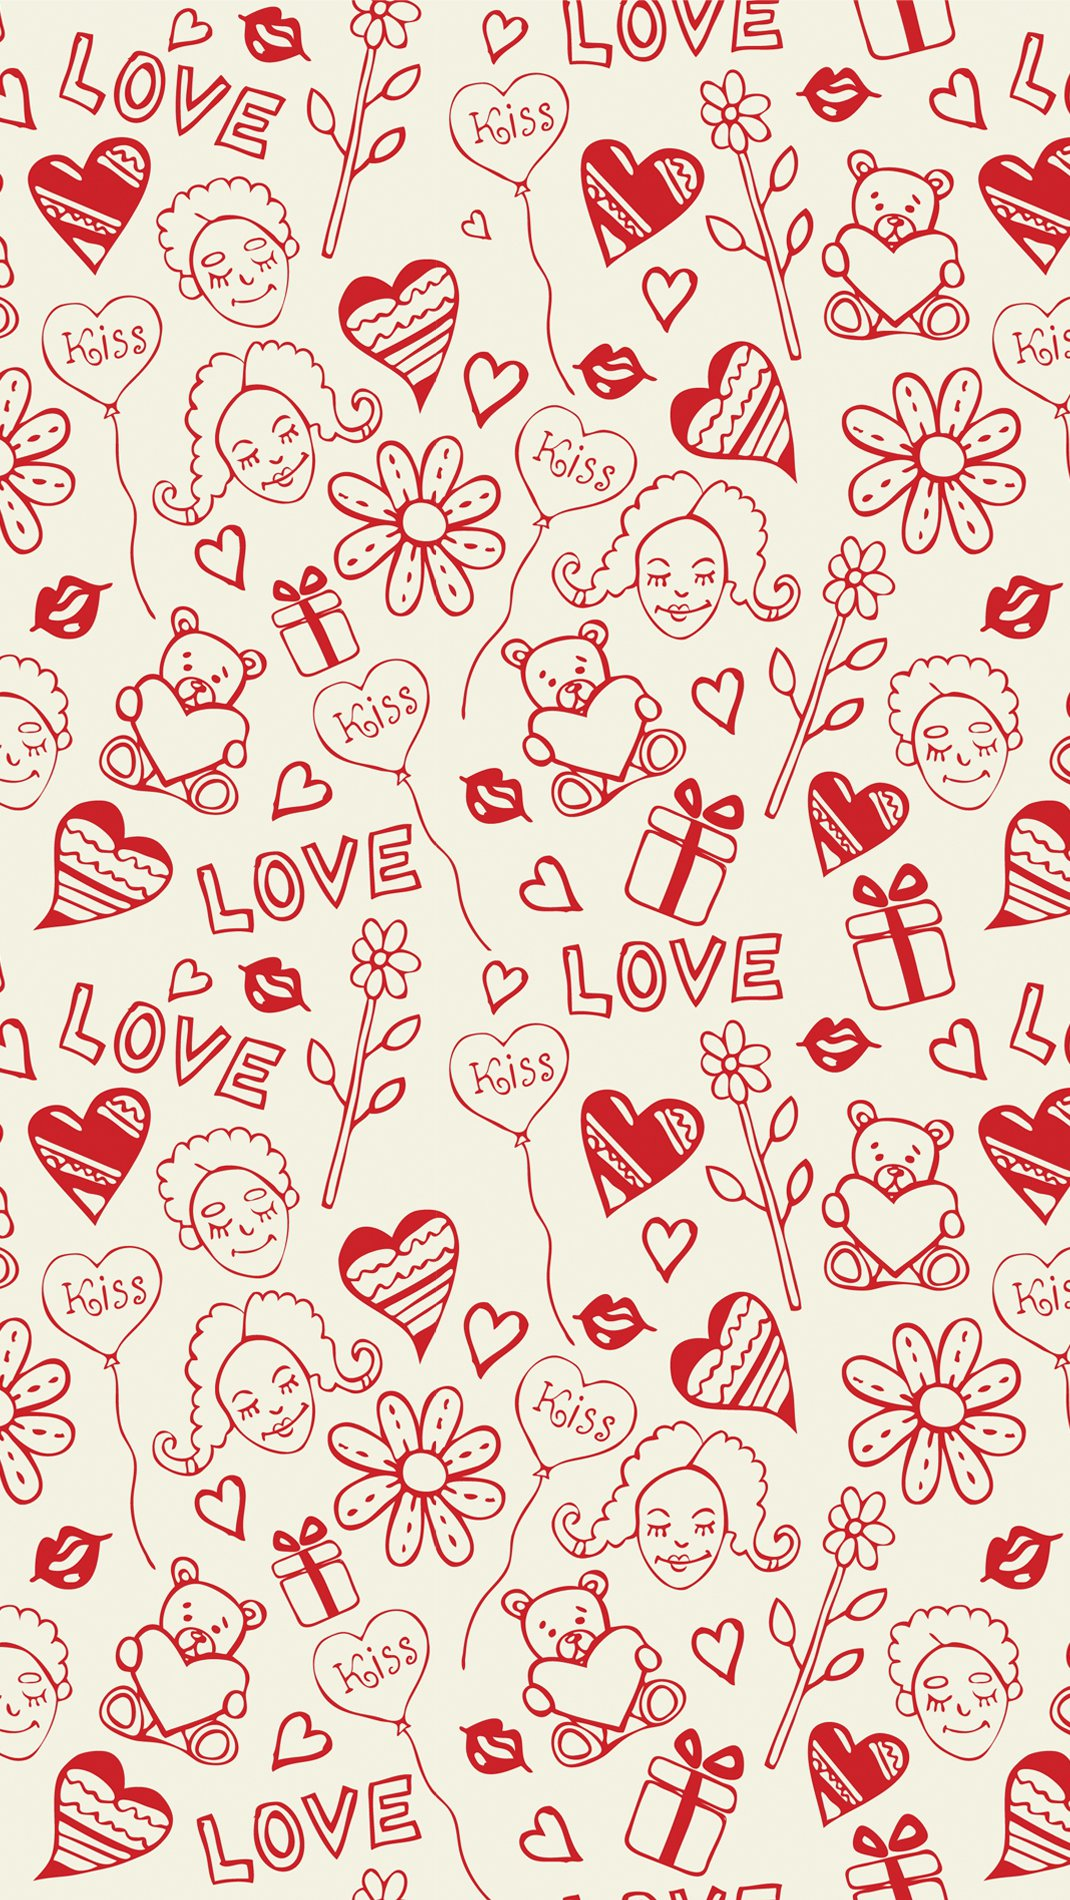 Wallpaper Design pattern about hearts, balloons, flowers, kisses, bears and gifts Vertical